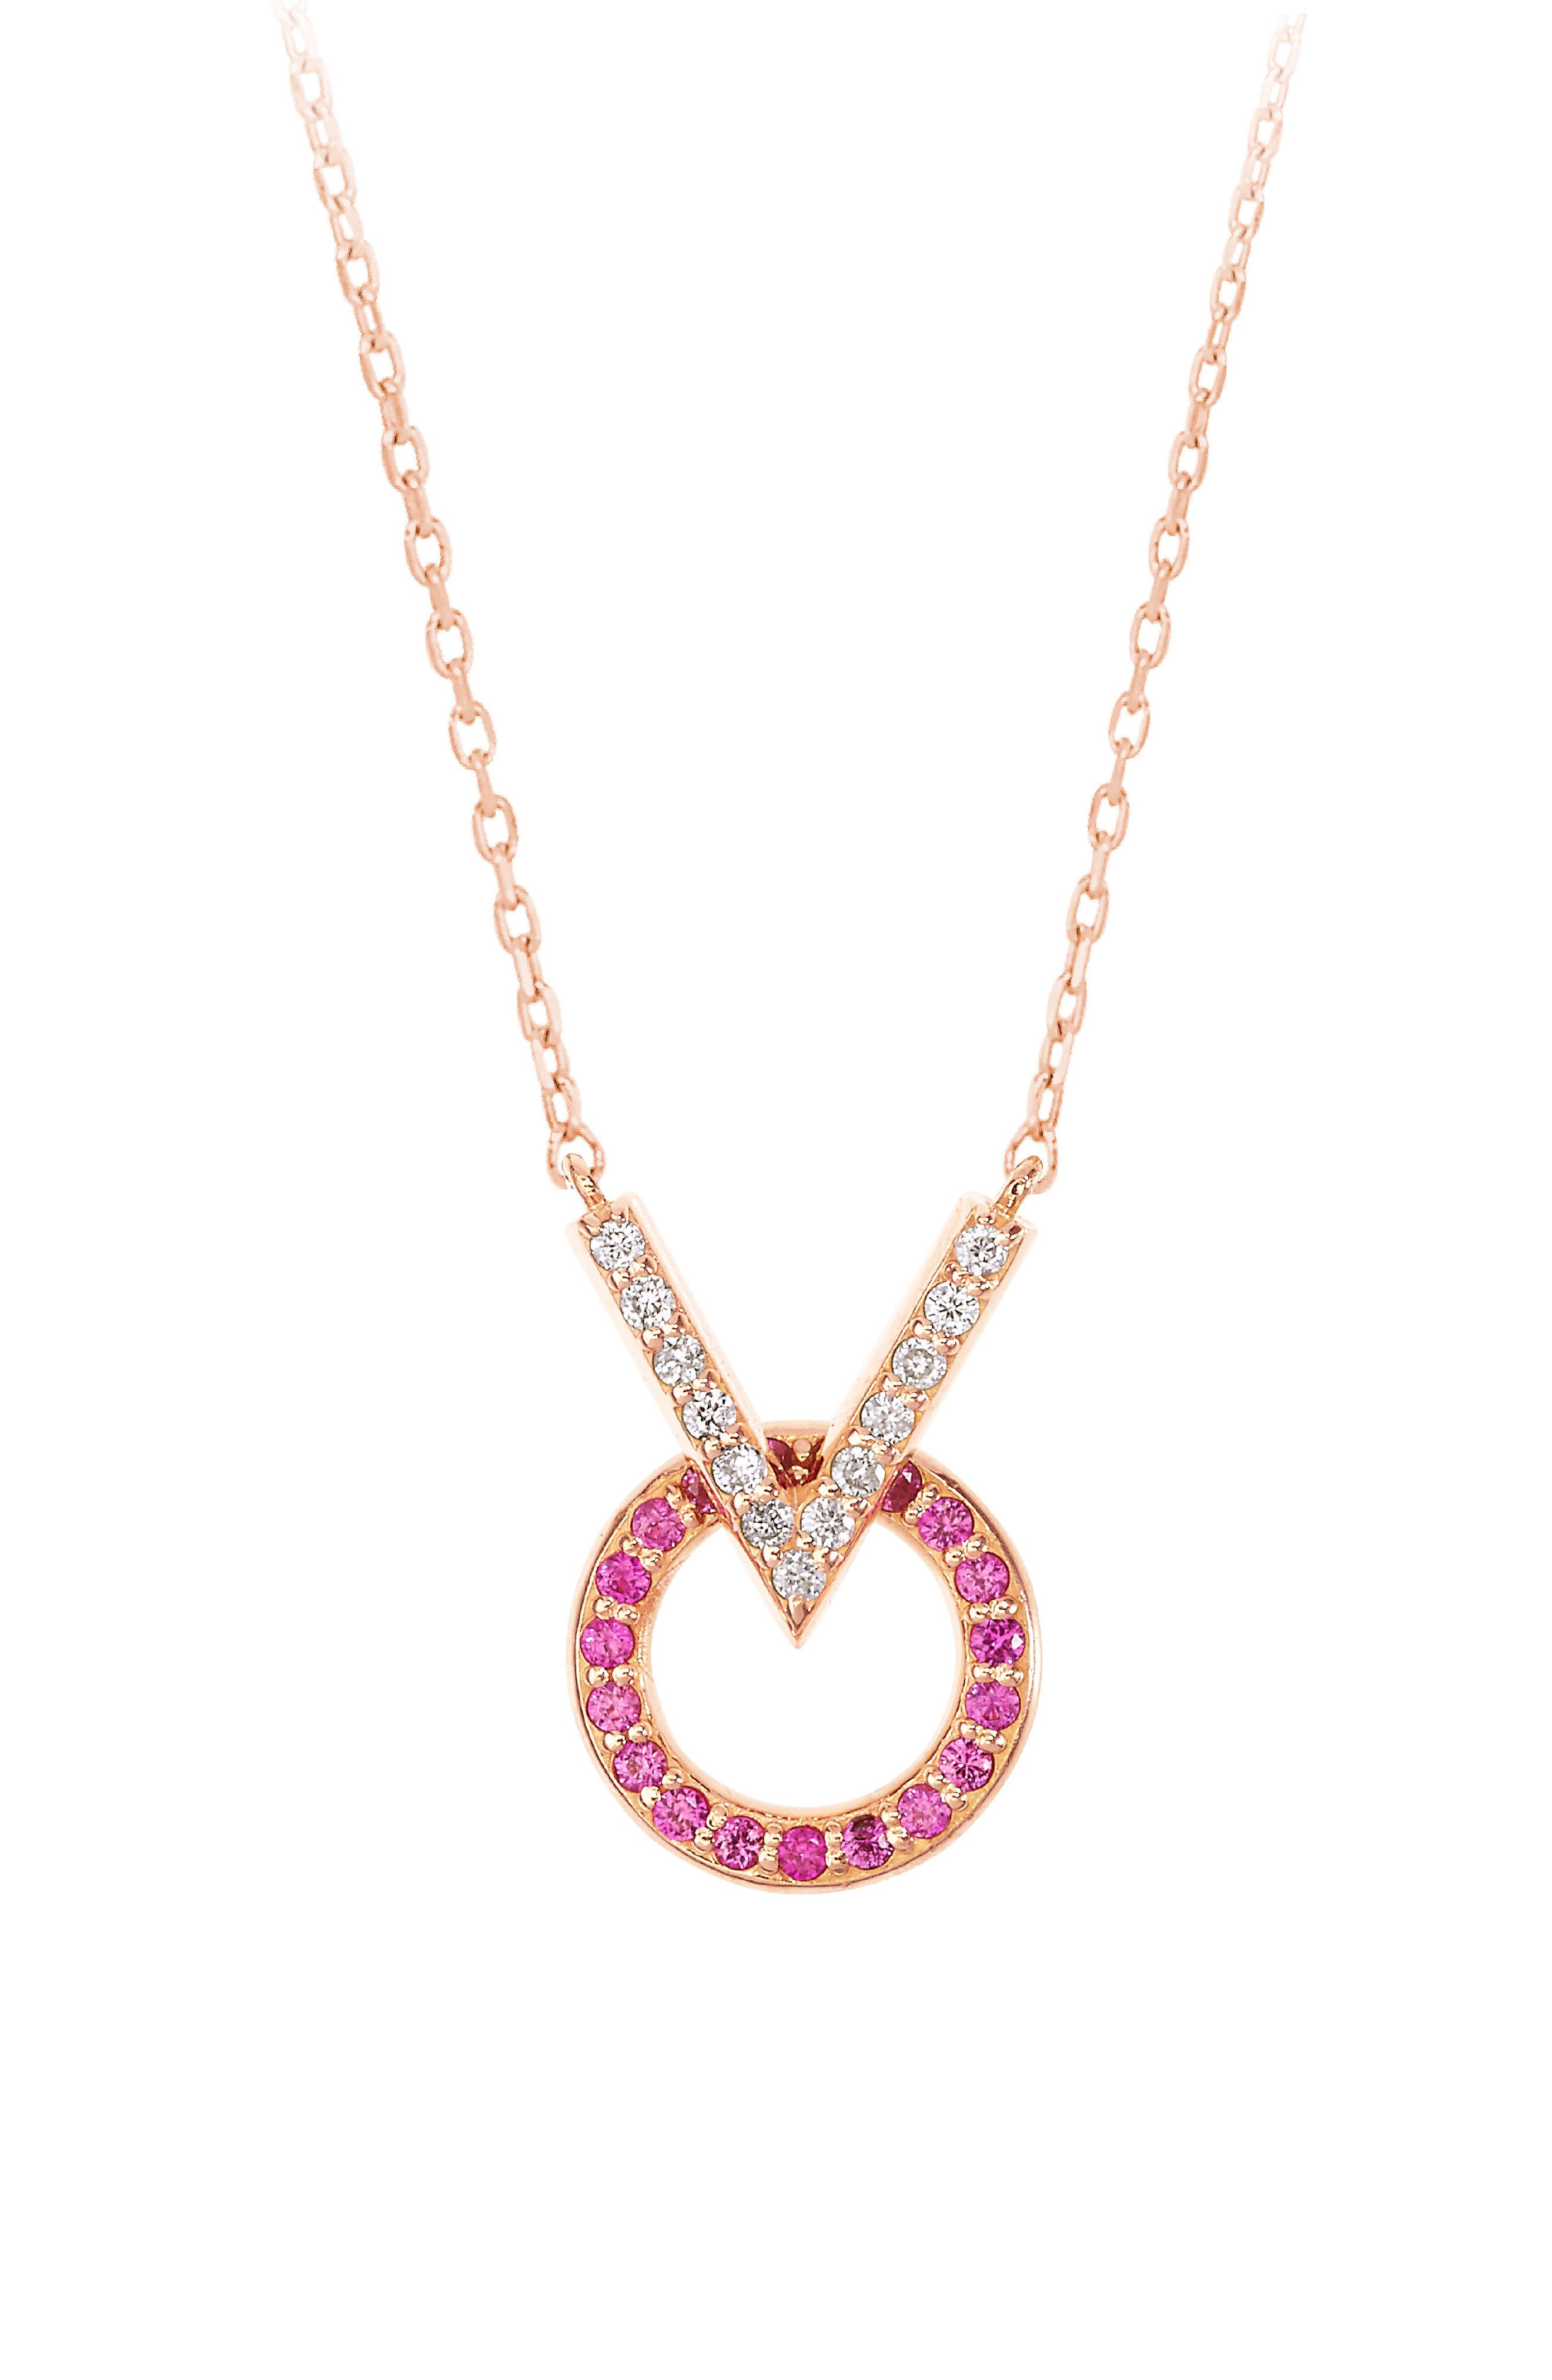 Baby Memphis V Round Diamond & Pink Sapphire Necklace,                             Main thumbnail 1, color,                             ROSE GOLD/ PINK SAPPHIRE